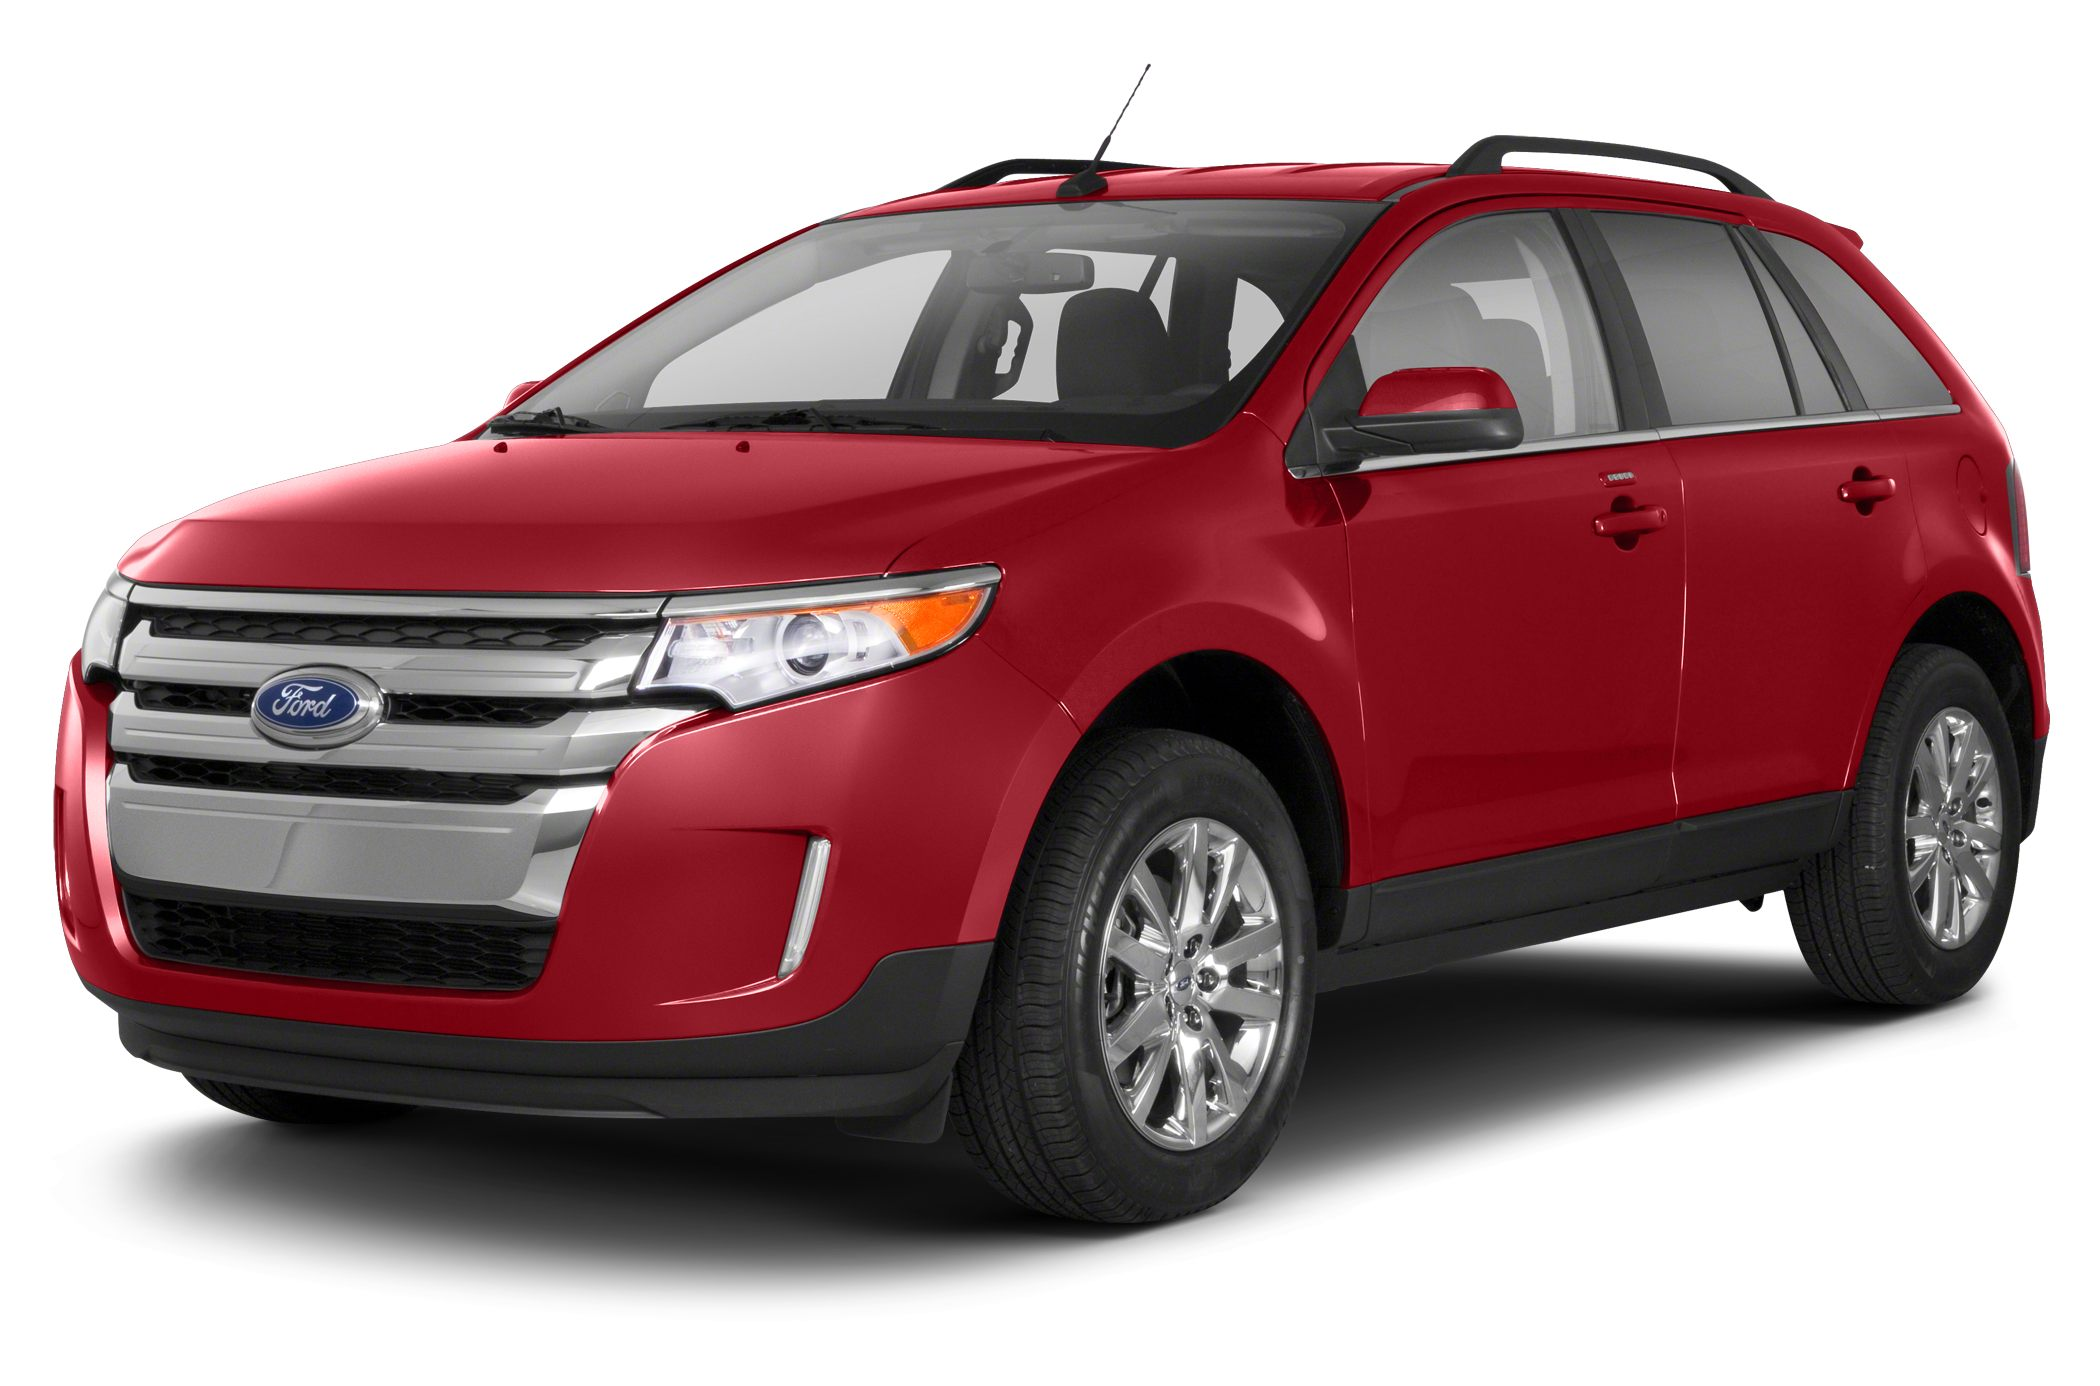 2013 Ford Edge SEL SUV for sale in Springfield for $26,500 with 37,668 miles.